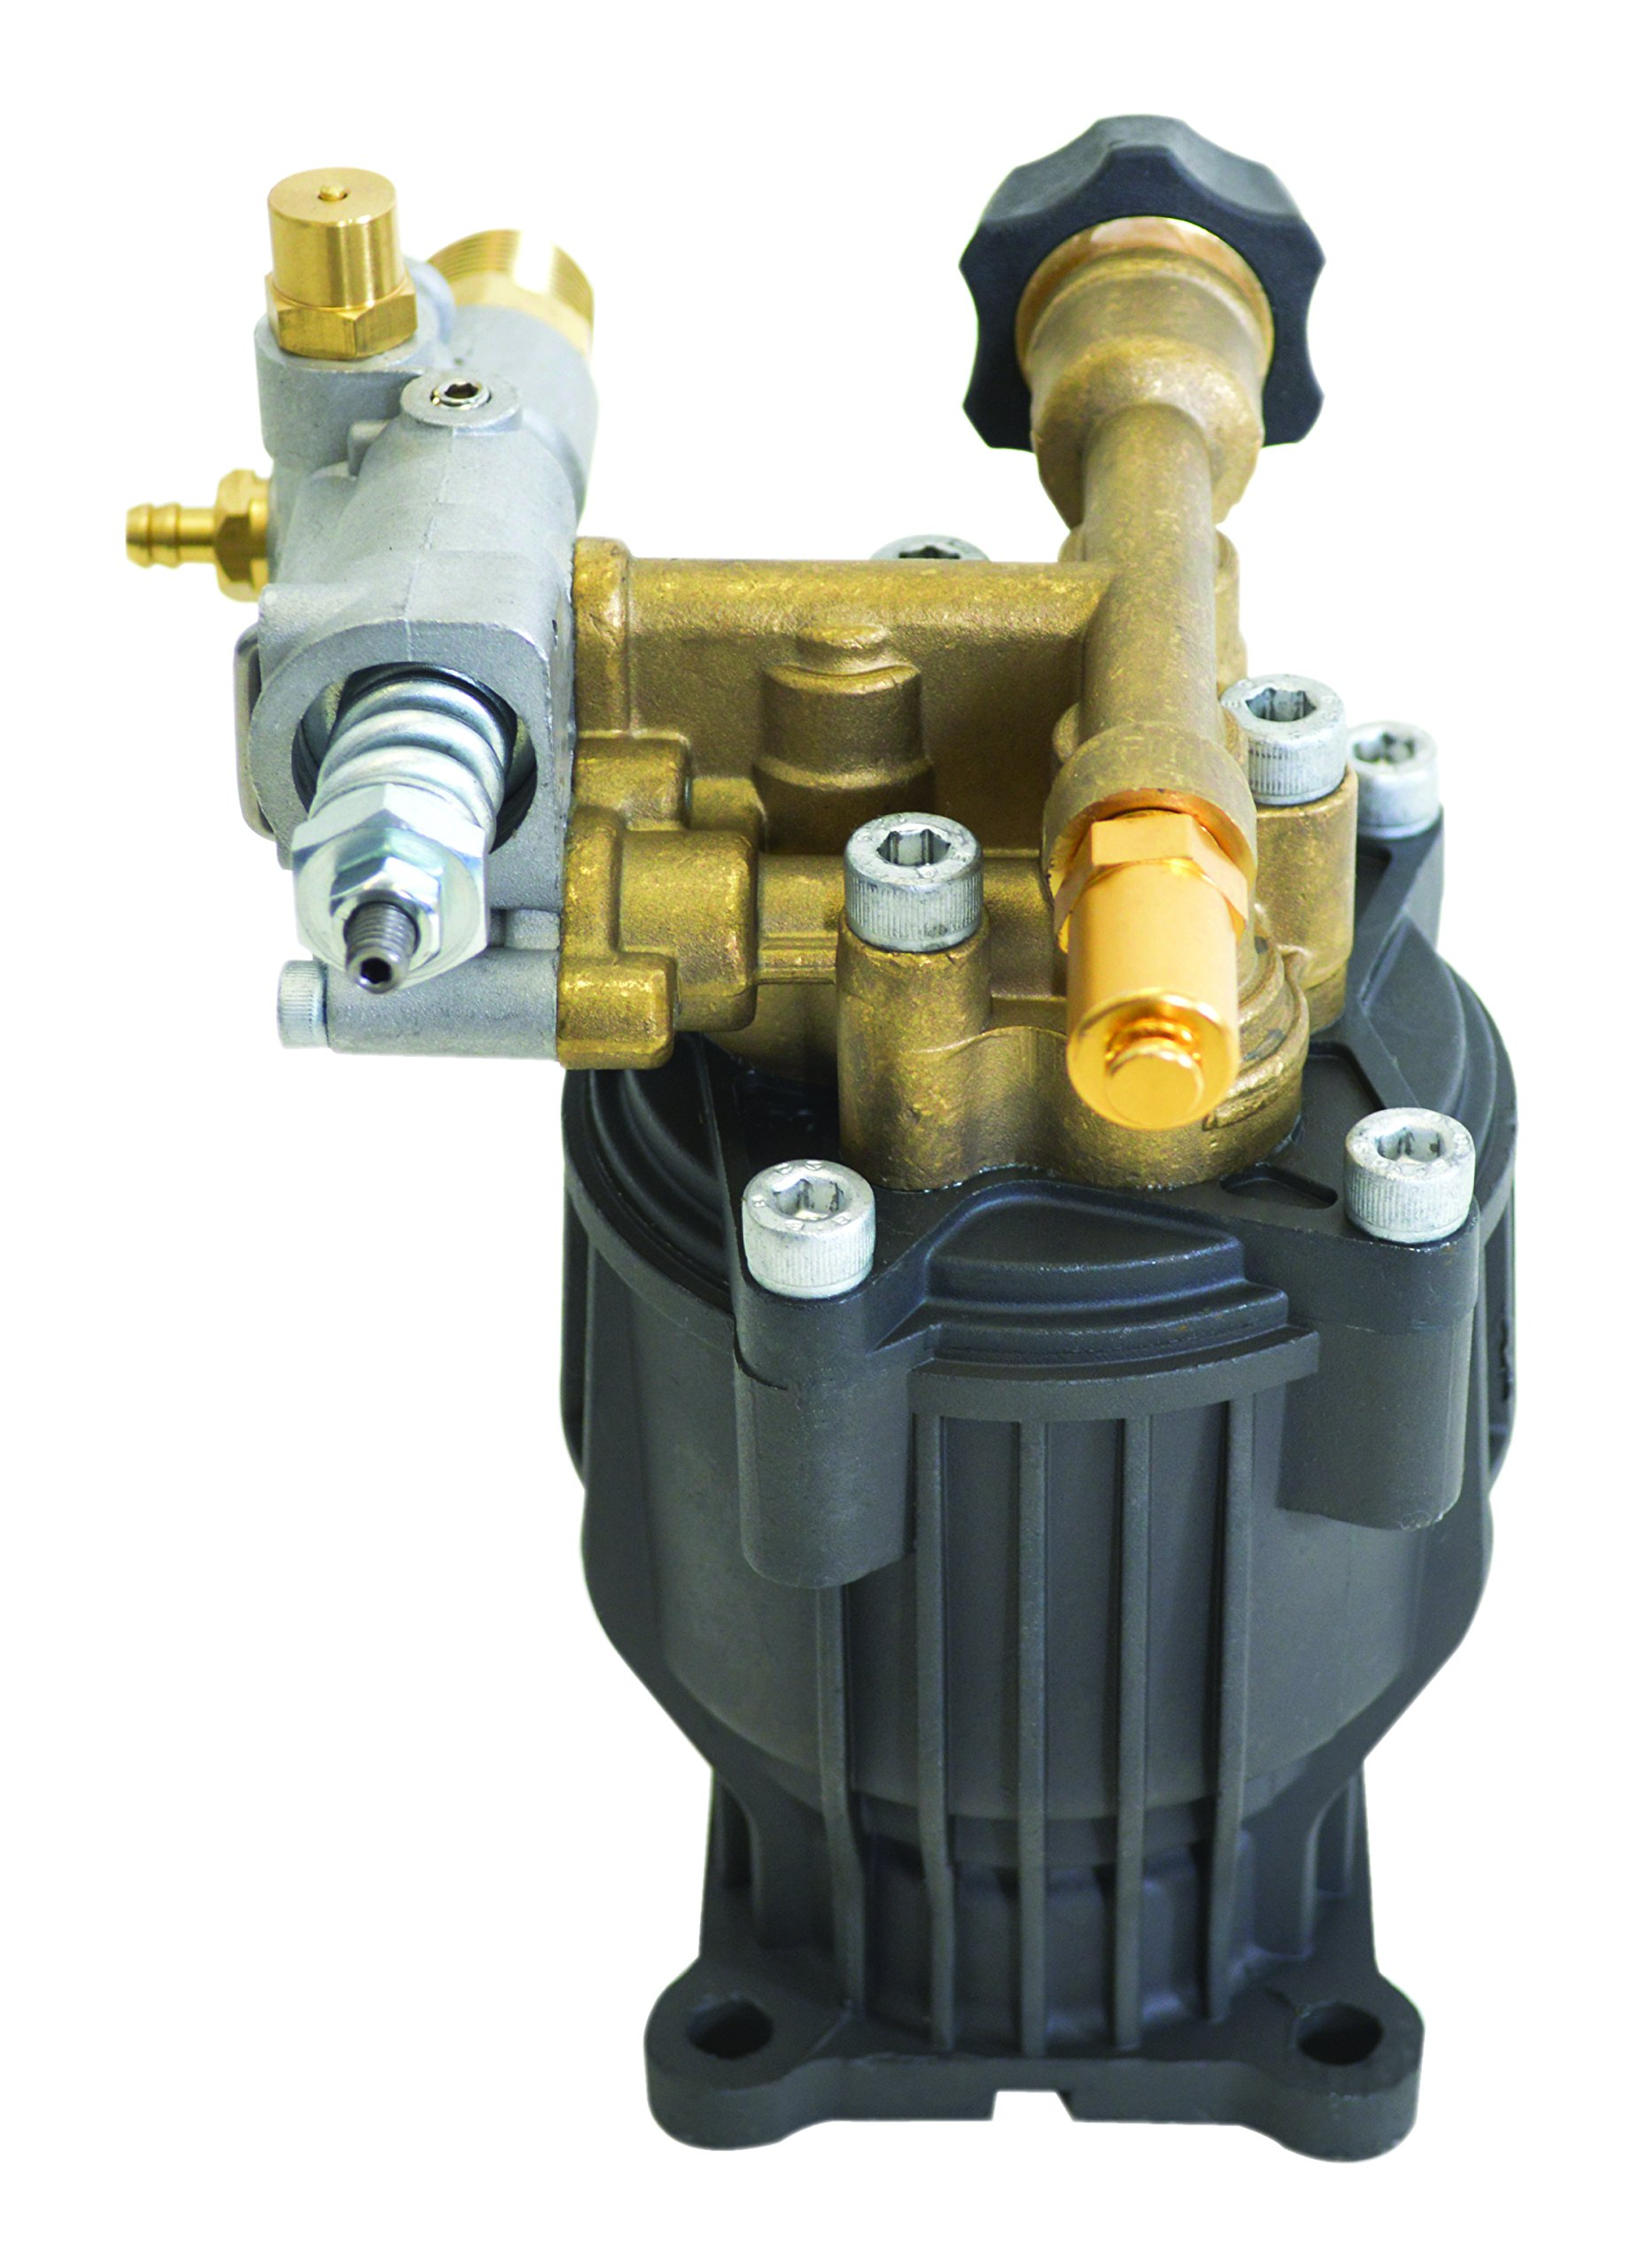 SIMPSON Cleaning 90029 Axial Cam Horizontal Pressure Washer Replacement Pump 8.6CAH12B 3100 PSI @ 2.5 GPM with Brass Head and PowerBoost Technology by Simpson Cleaning (Image #3)